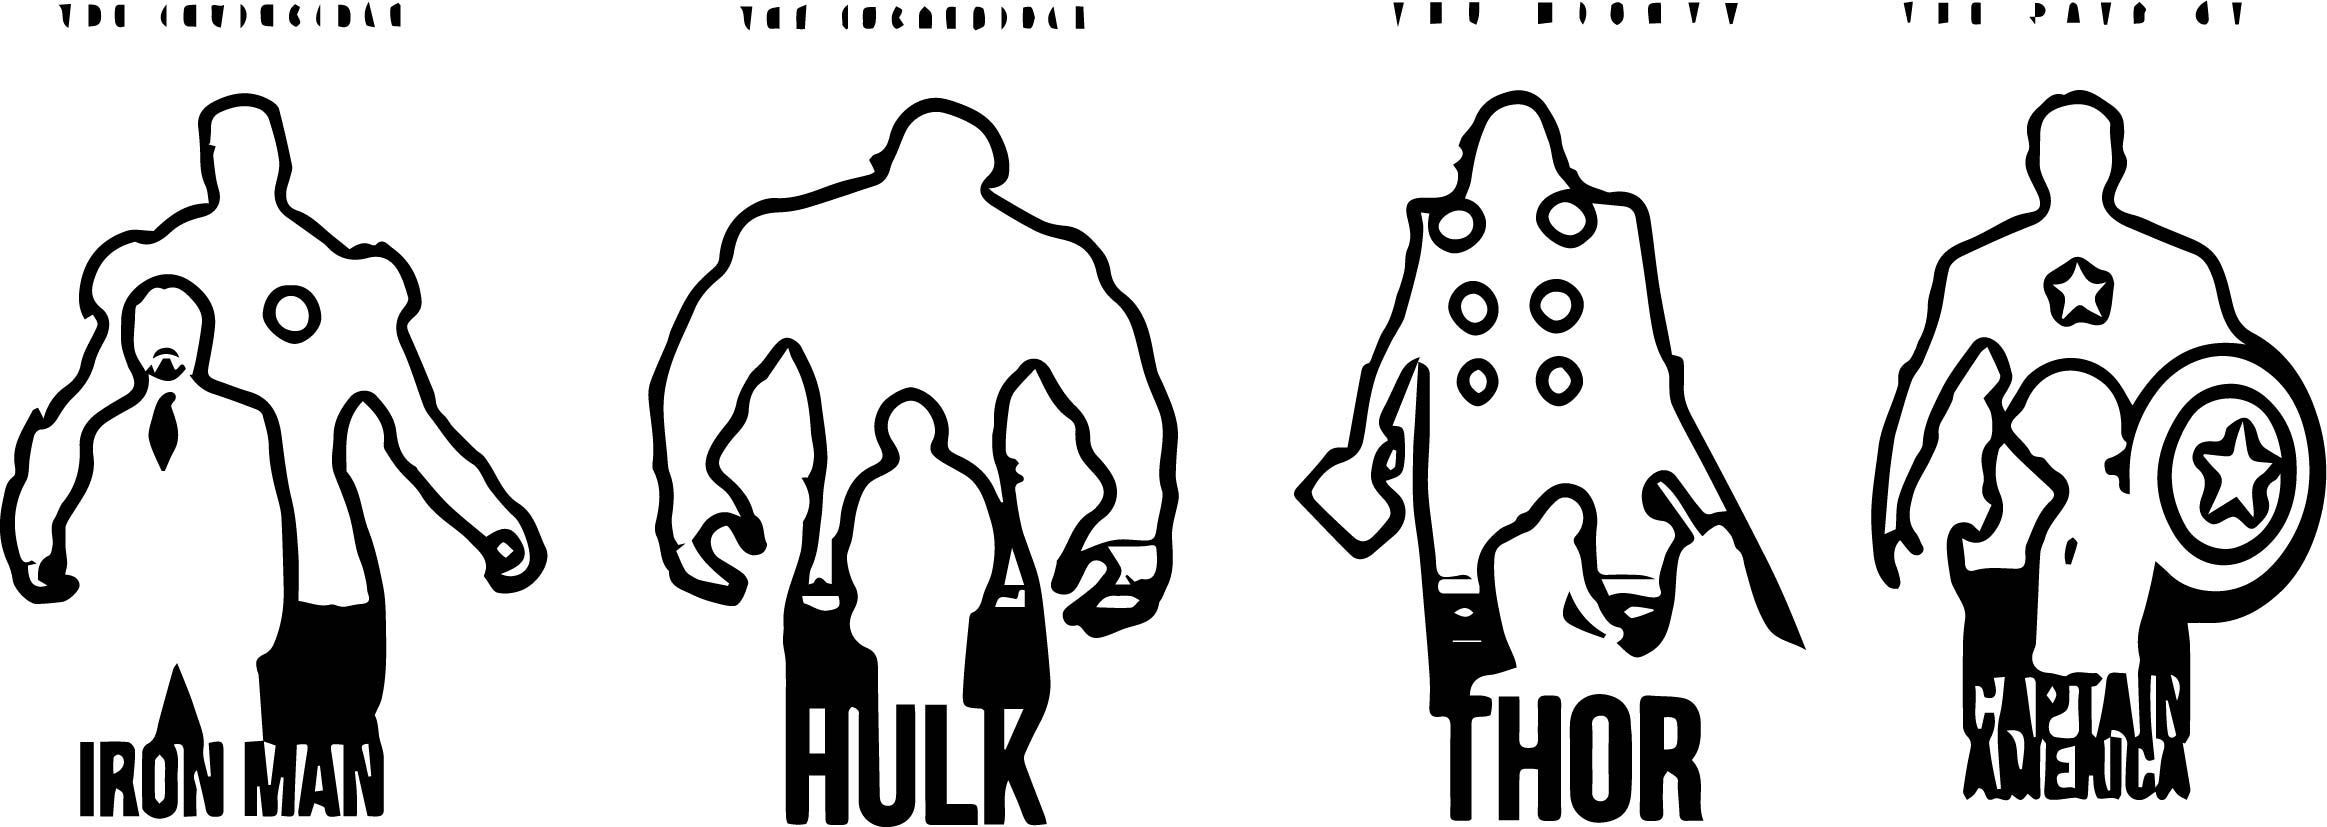 Avengers Silhouette Coloring Page Wecoloringpage Com